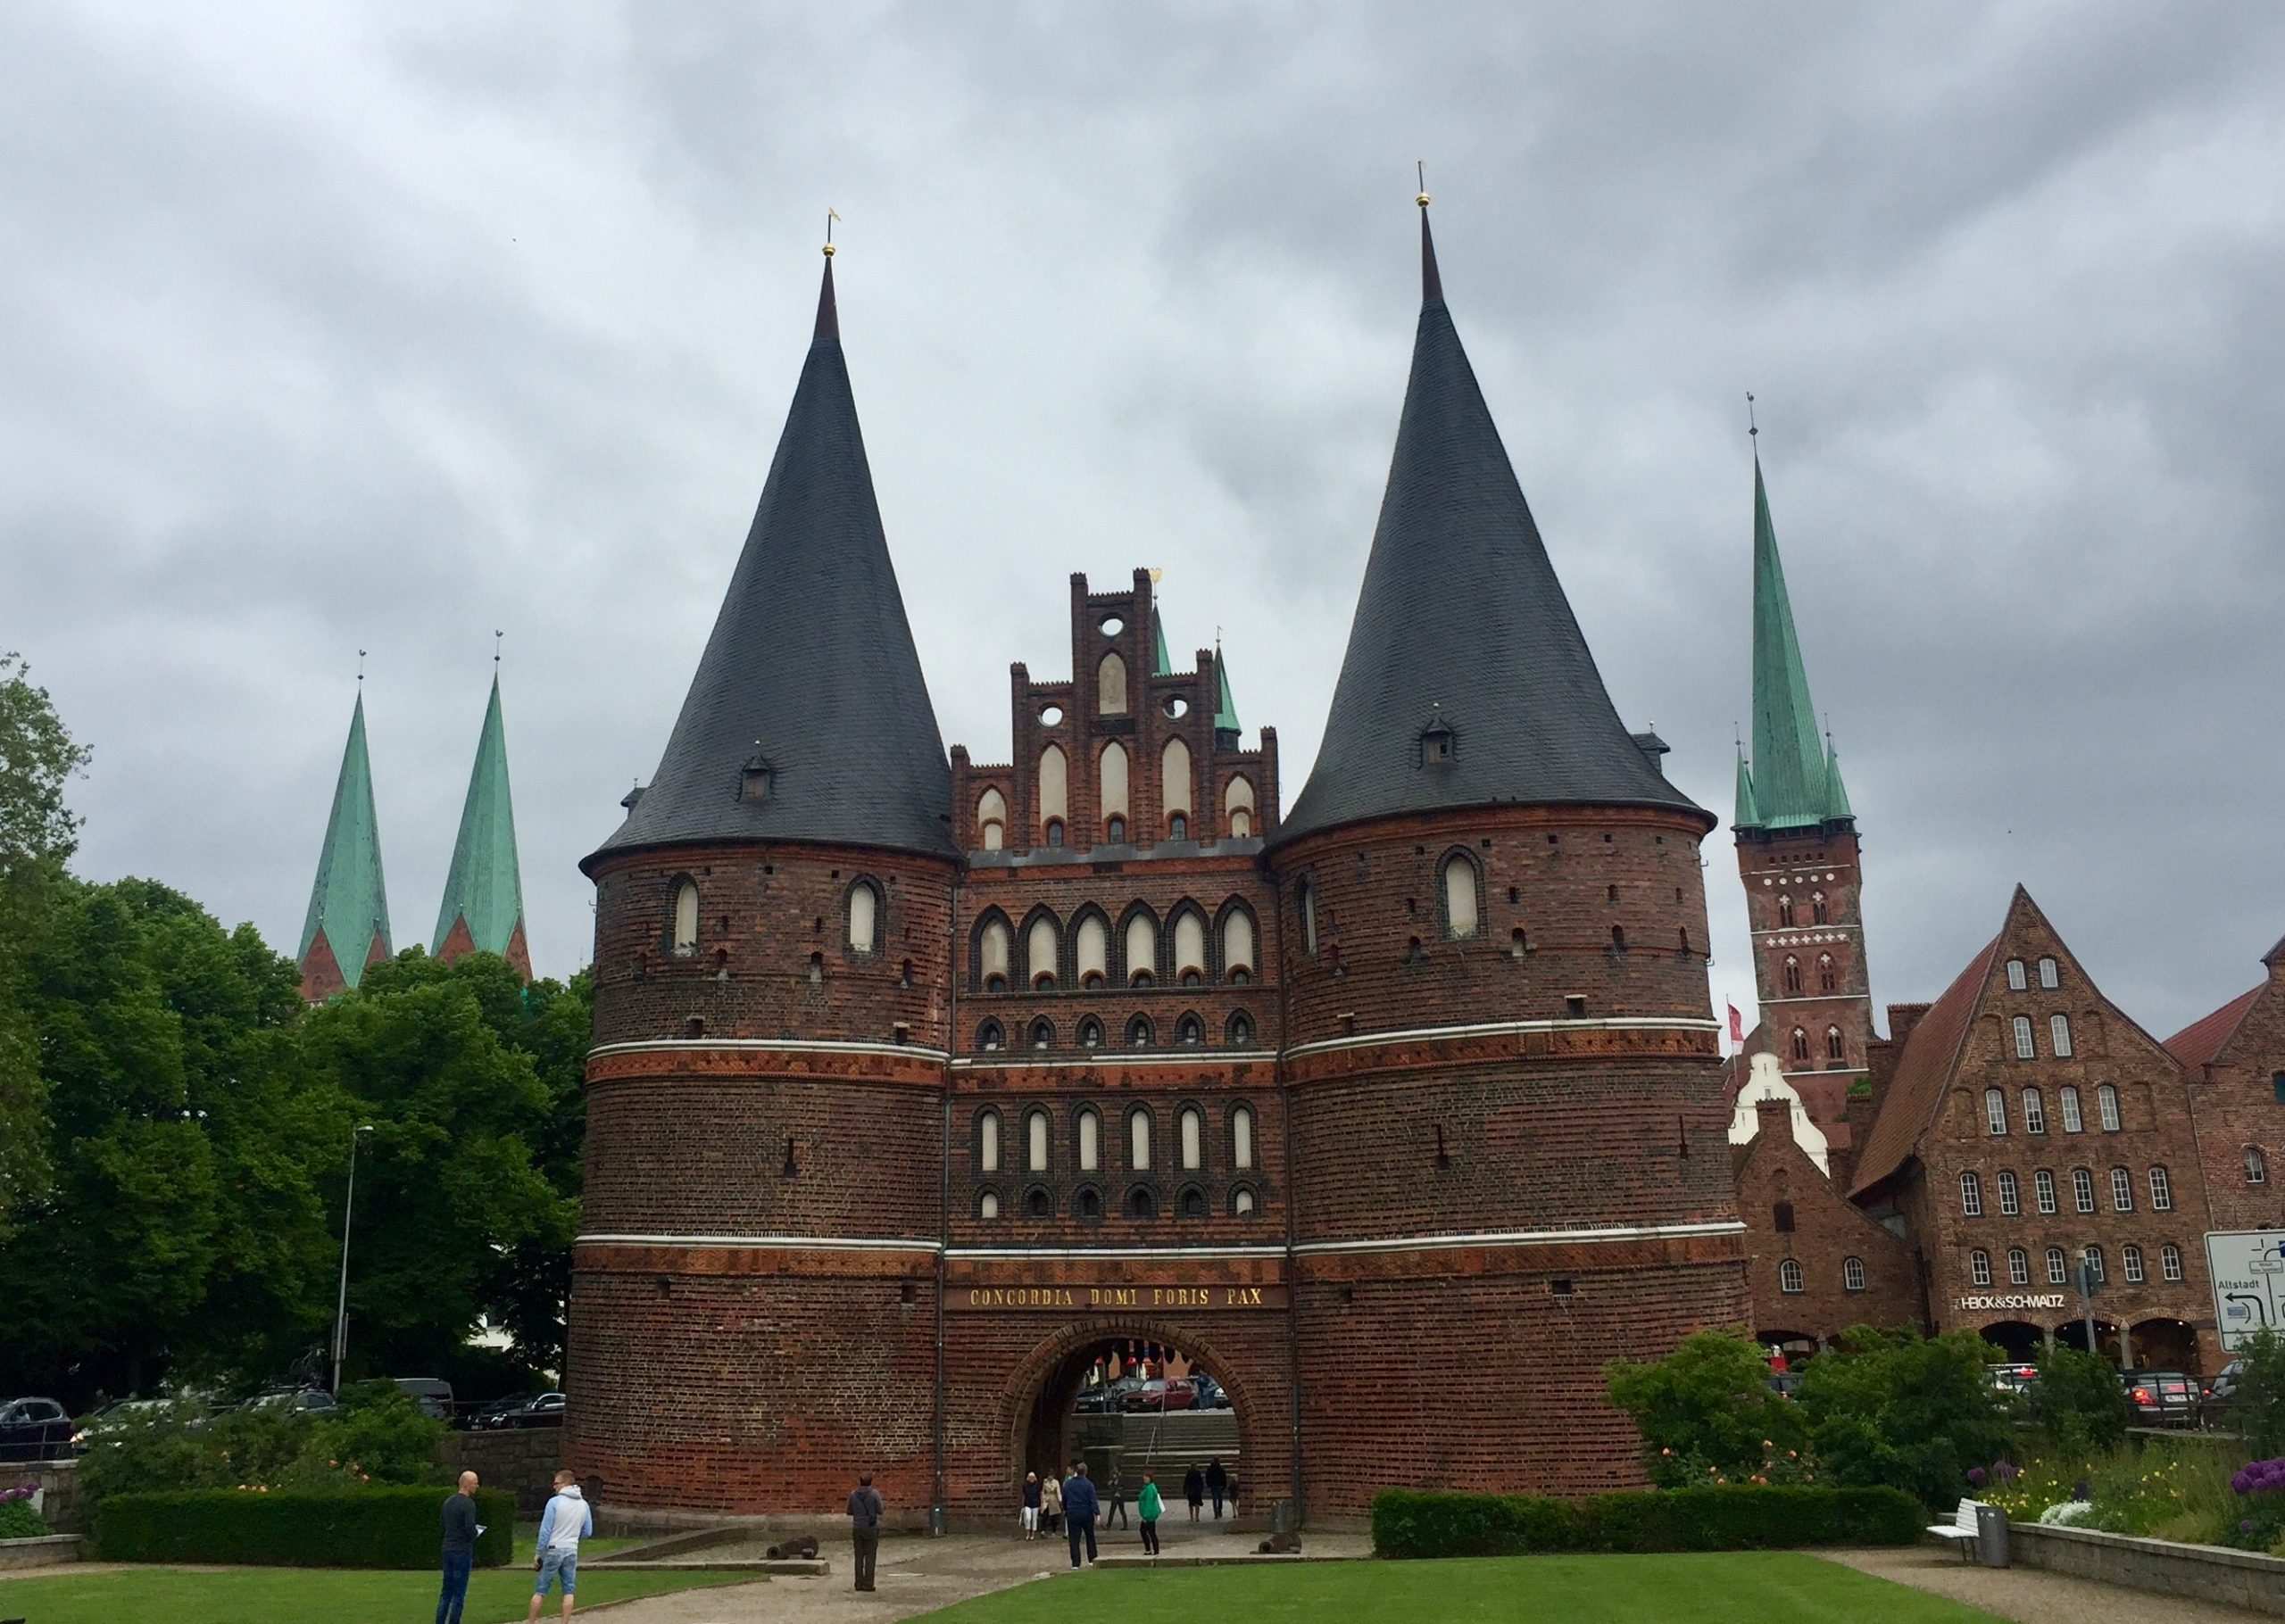 The old town gate in Lubeck.